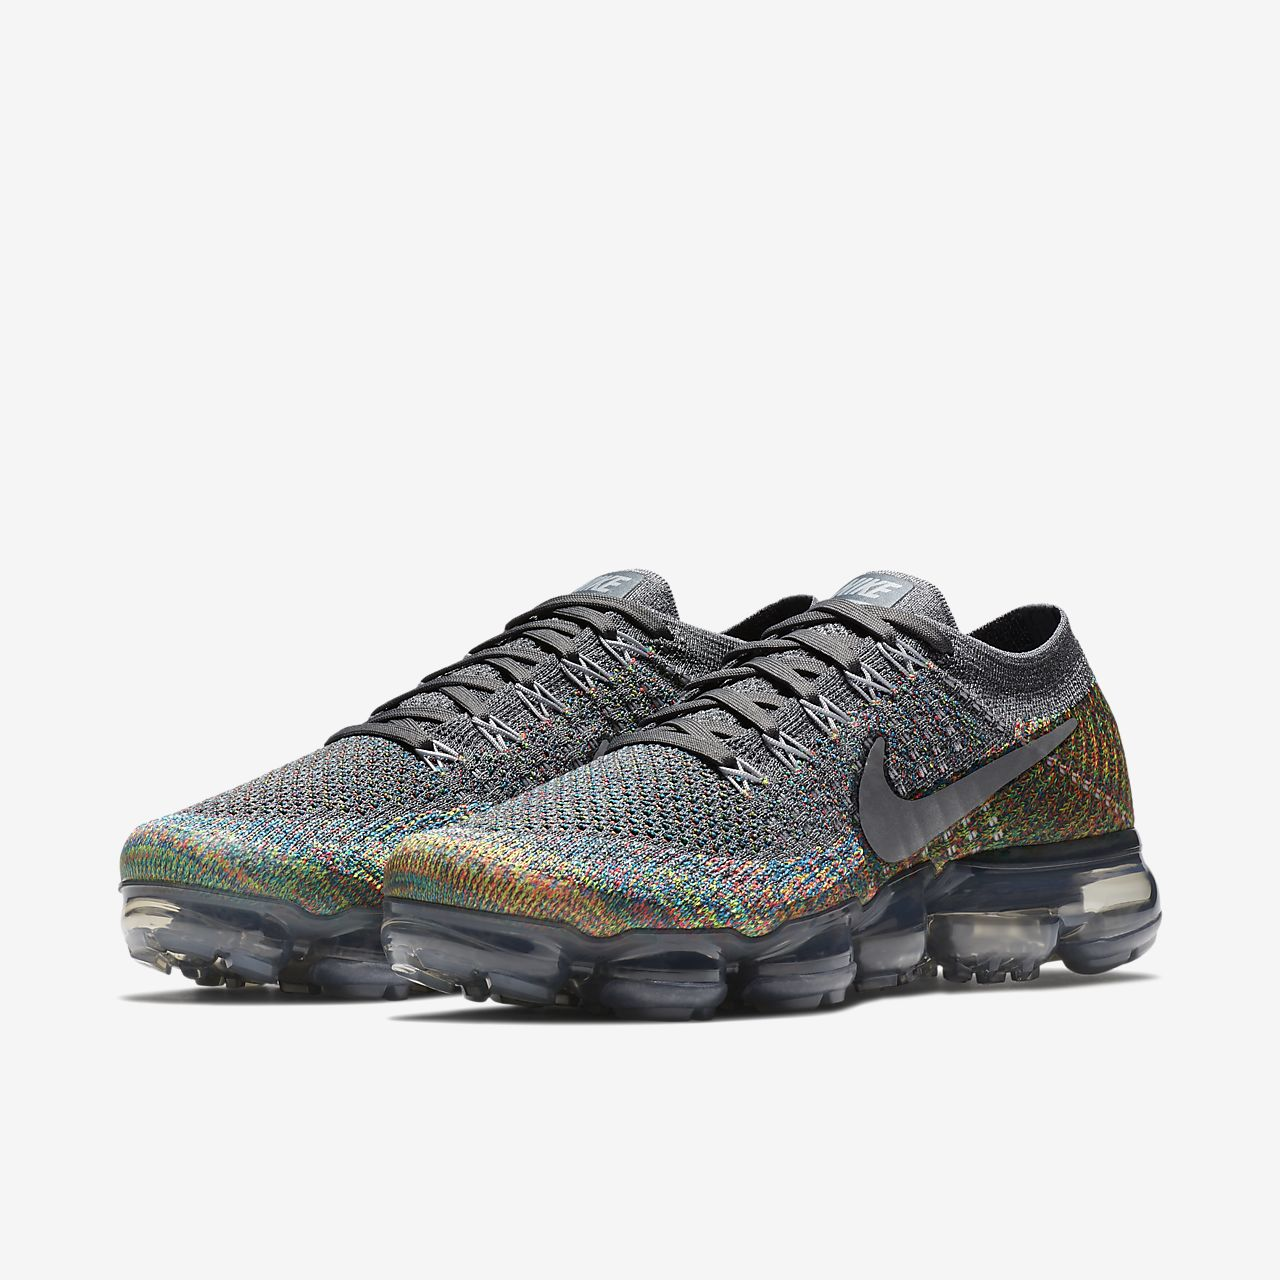 Nike Air Vapormax Flyknit Women Model Aviation